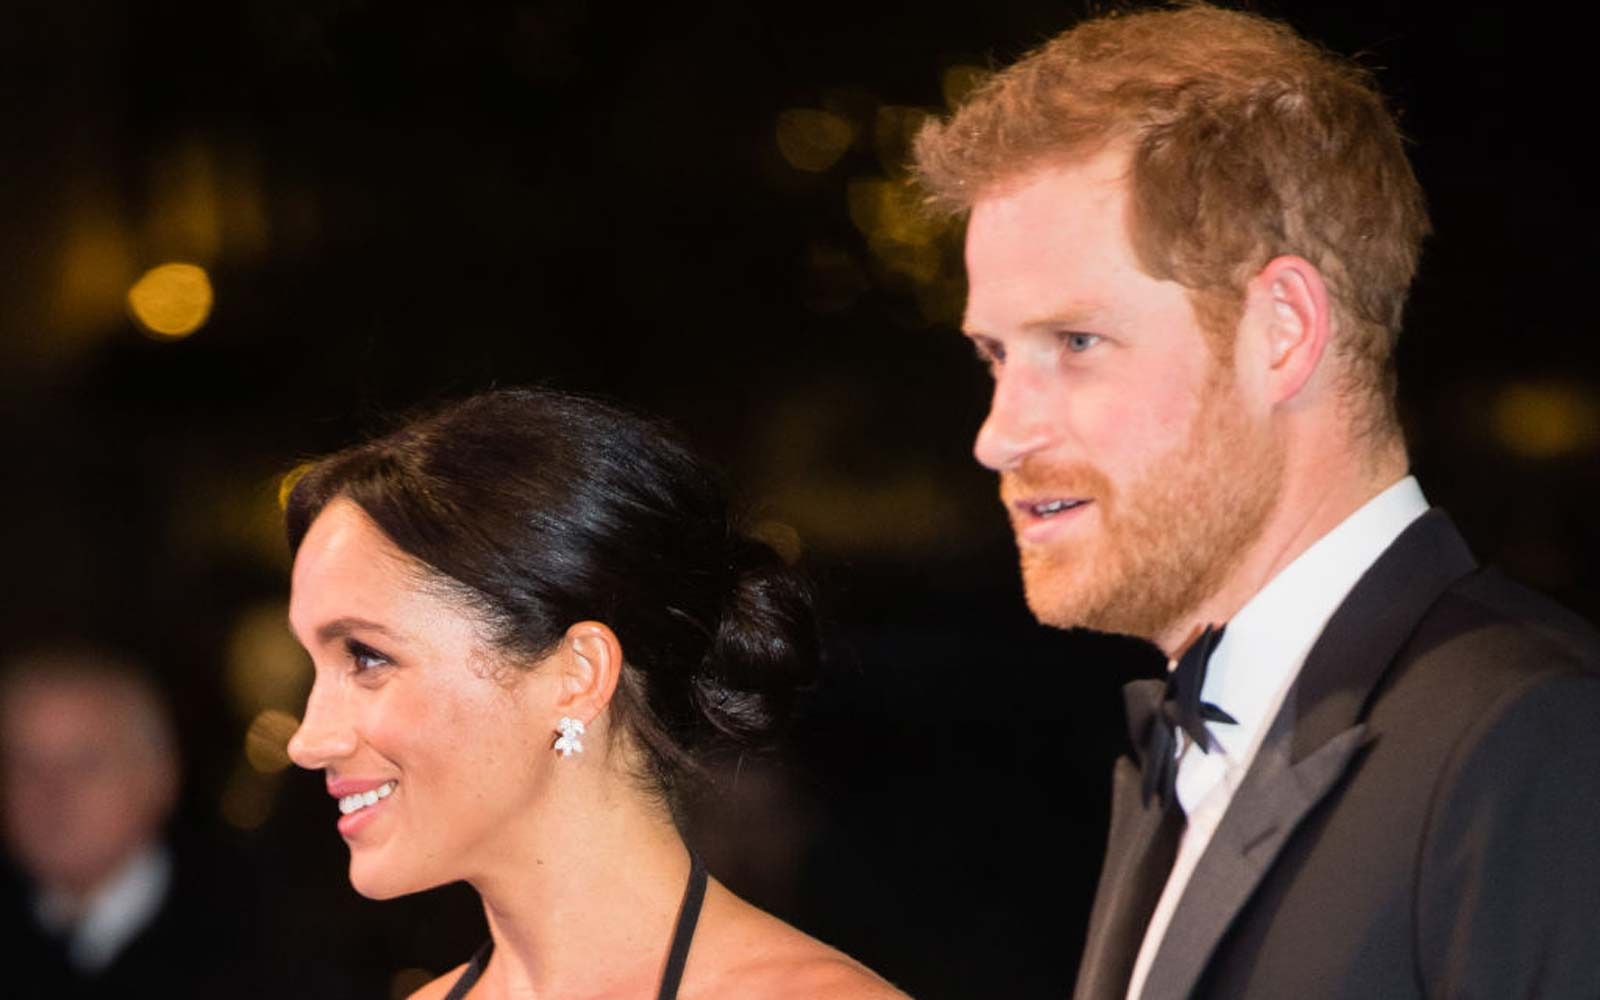 Meghan Markle and Prince Harry Are Moving Out of Kensington Palace